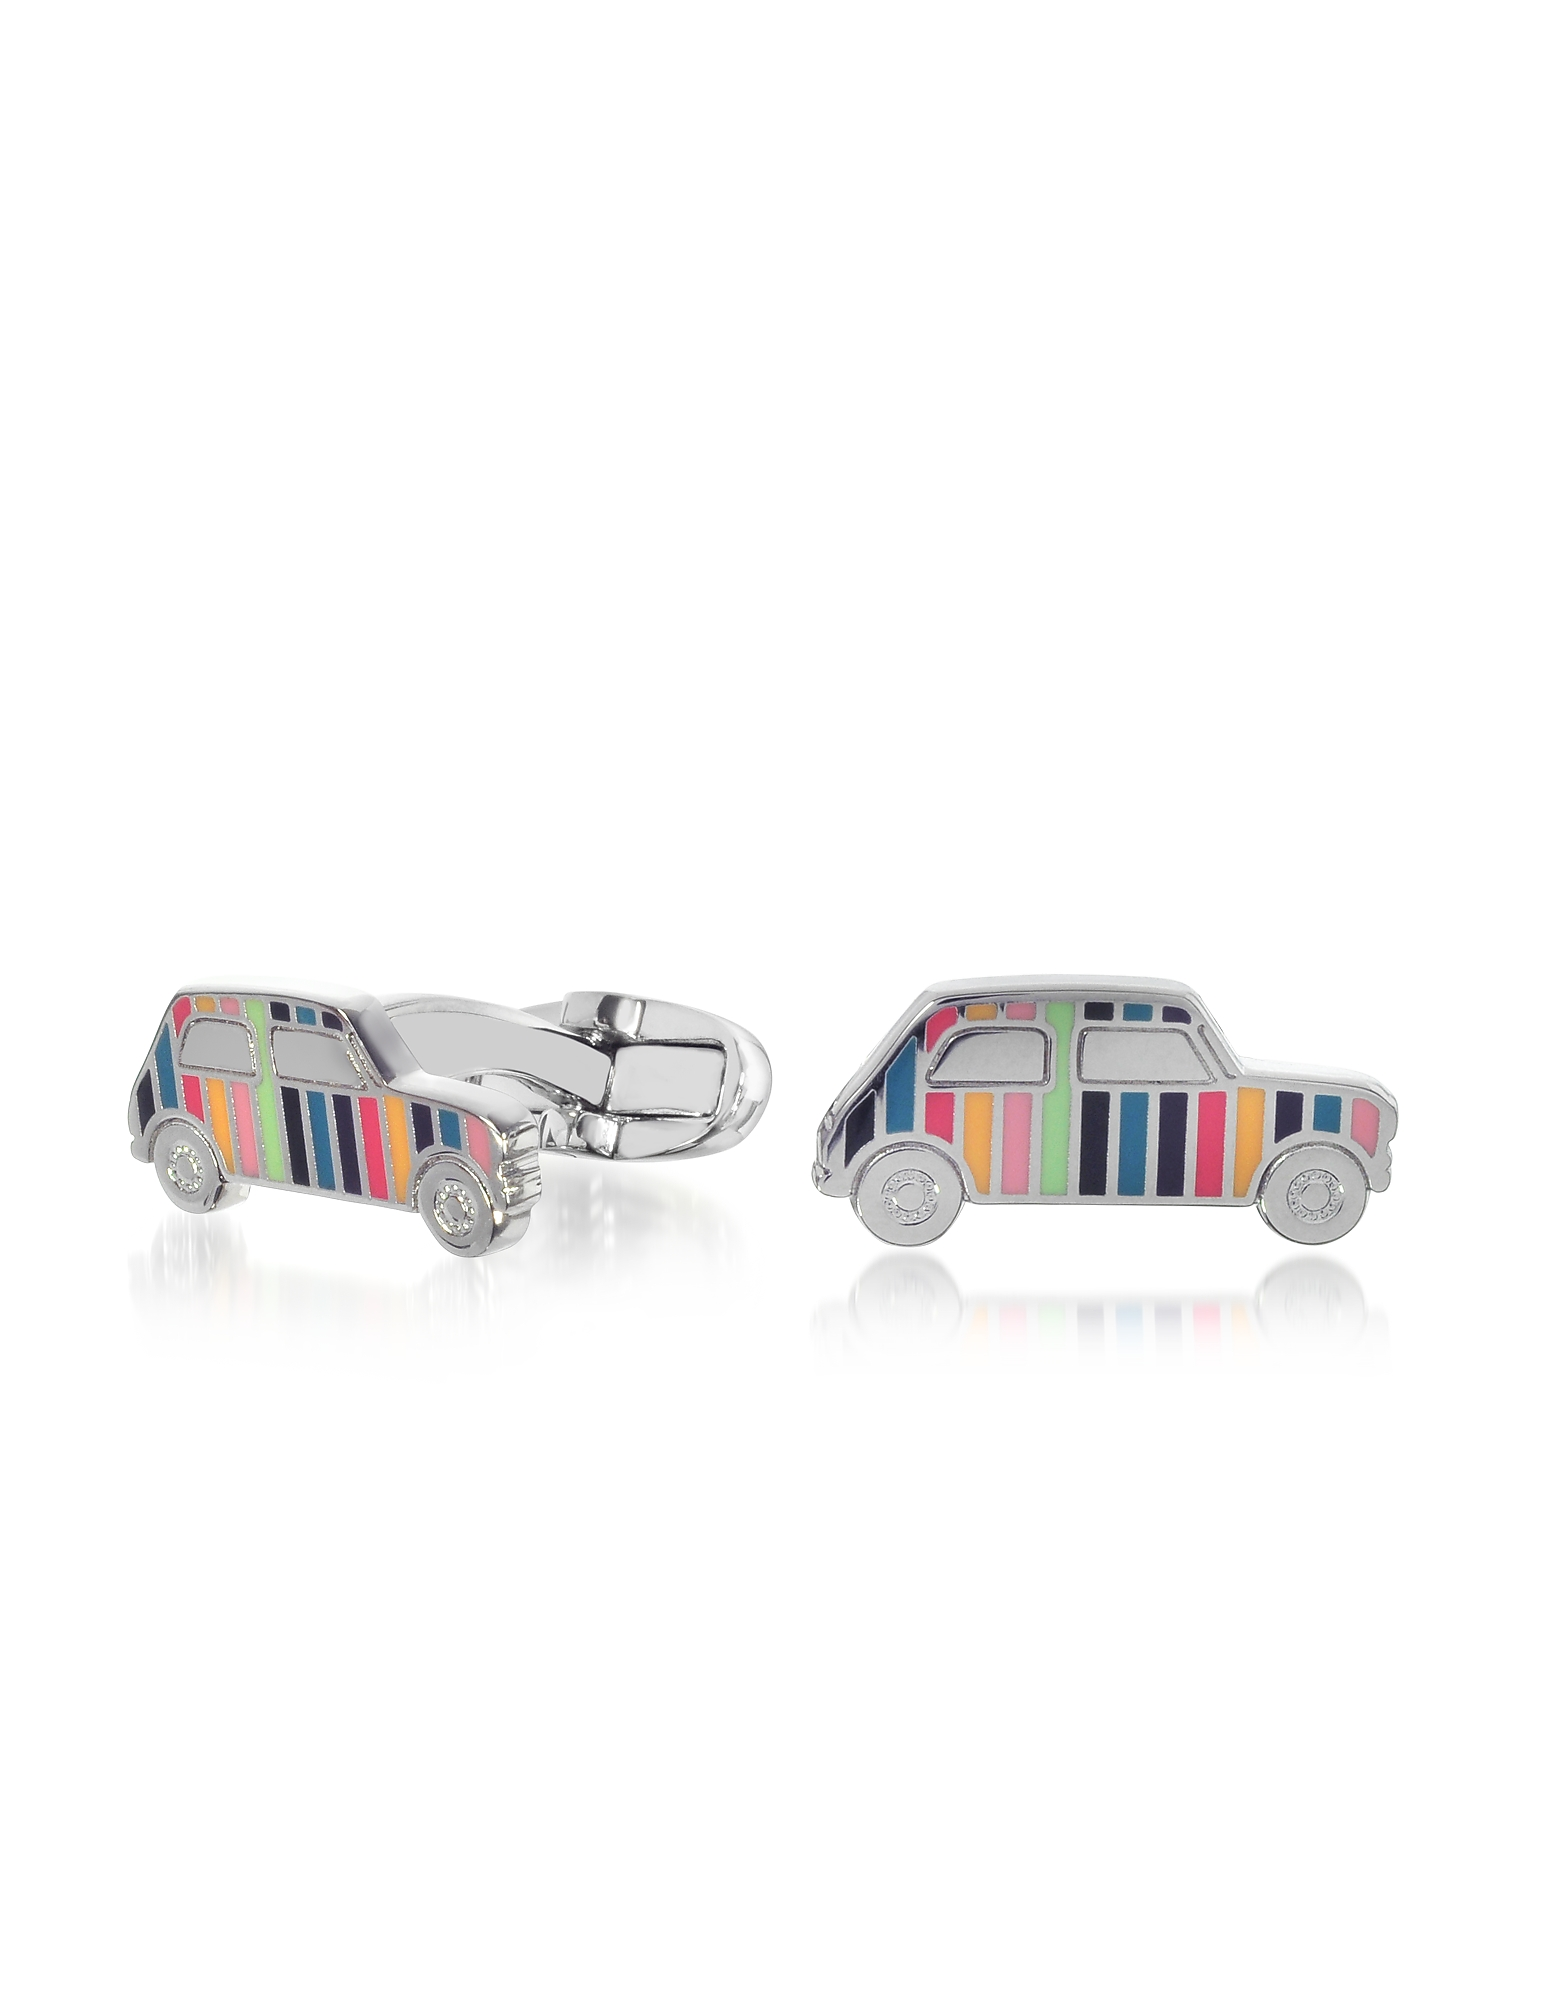 Paul Smith Cufflinks, Striped Mini Car Men's Cufflinks